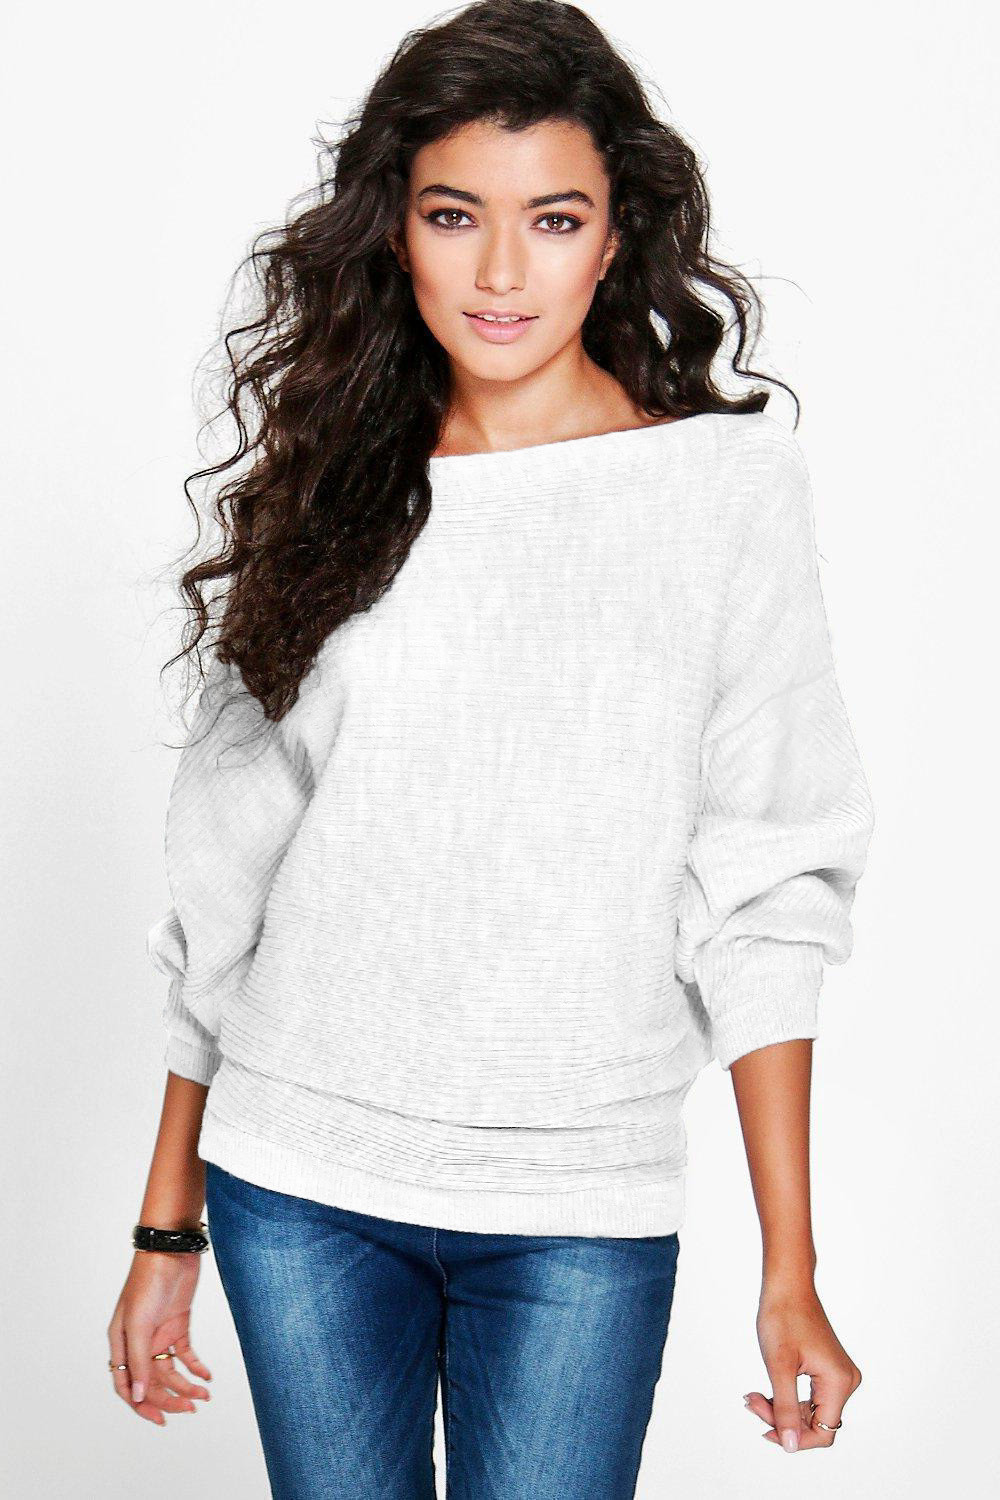 Jaycosin Fashion Casual Lady Long Sleeve Batwing Sweater Stylish Comfortable Elegant Soft Solid Color Jumper Tops Knitwear